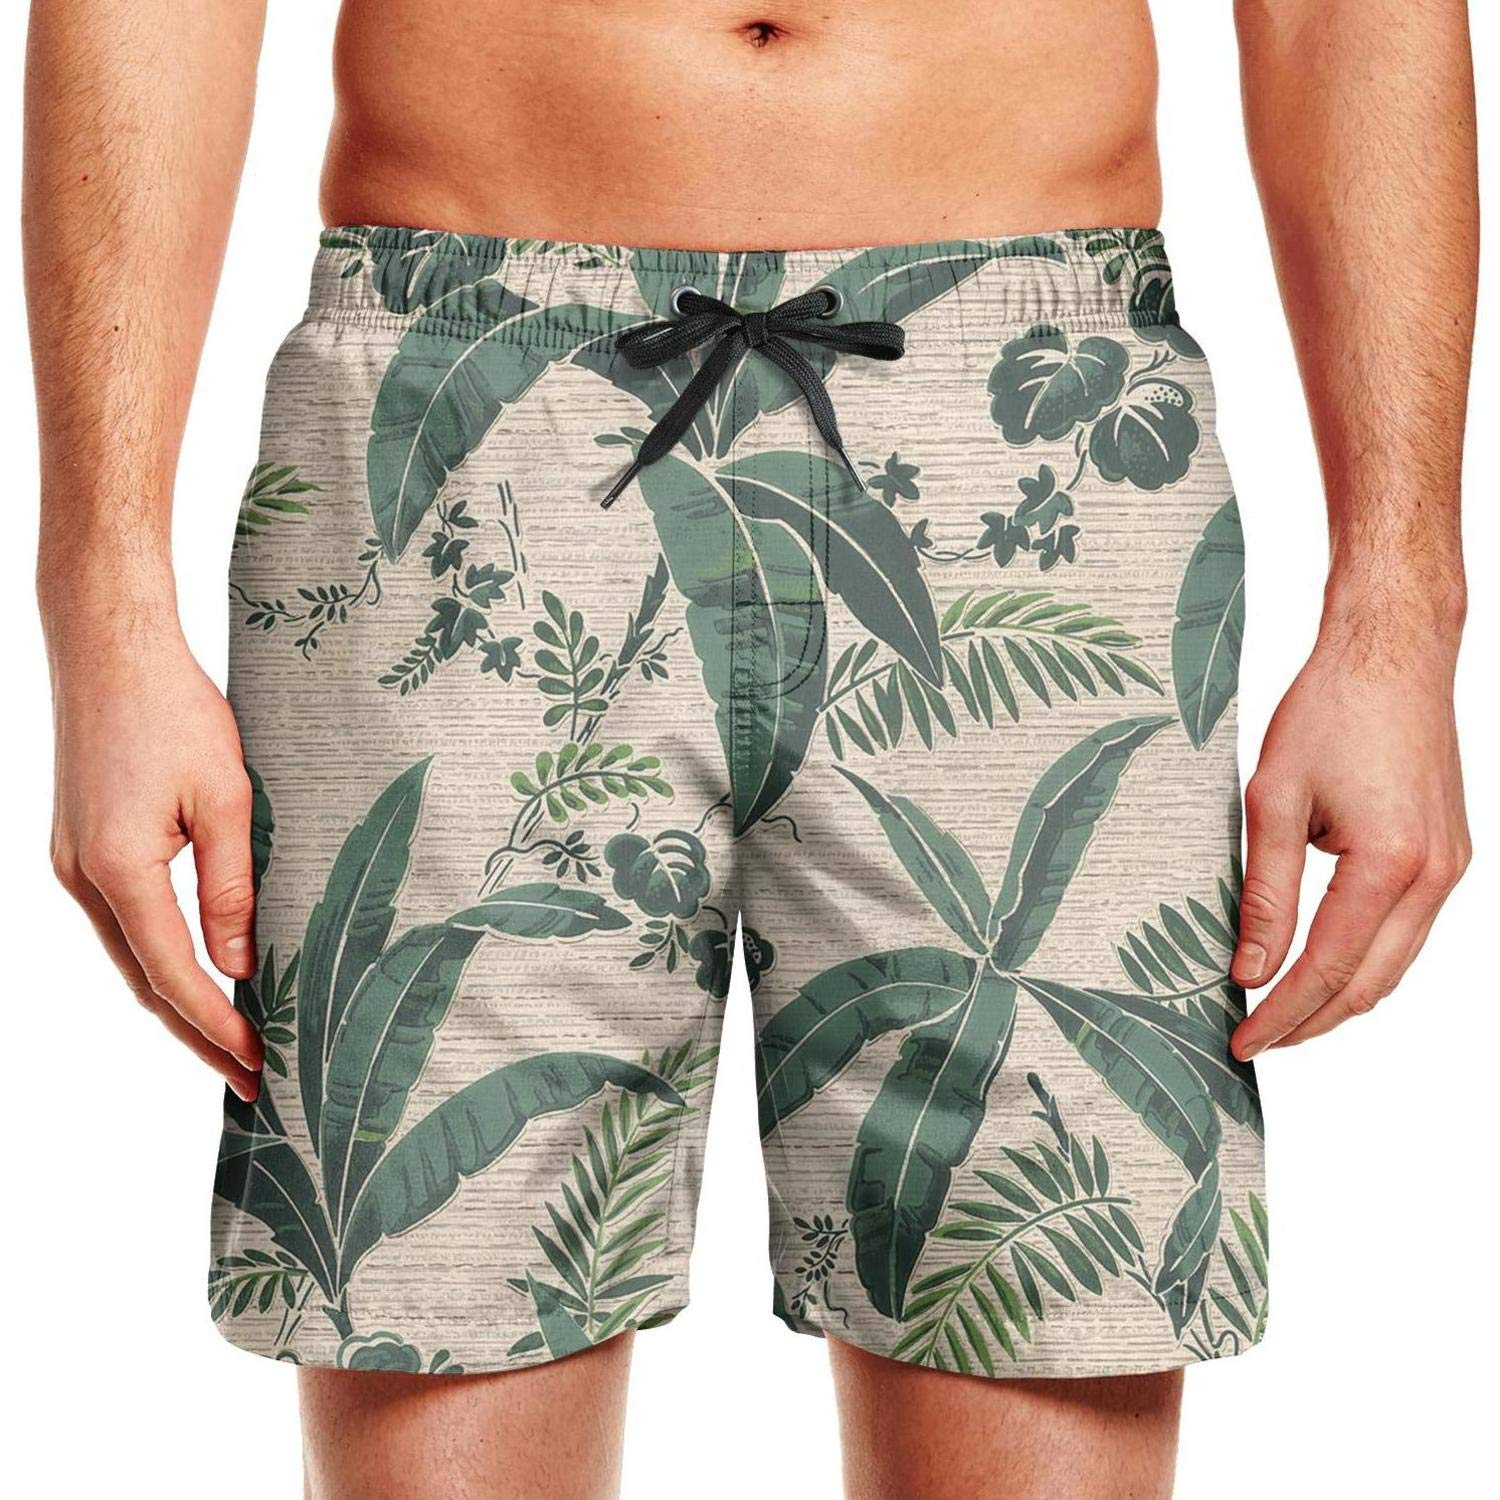 Mens 1 Banana Leaf Swim Trunks Casual Beach Shorts Slim Fit Board Shorts